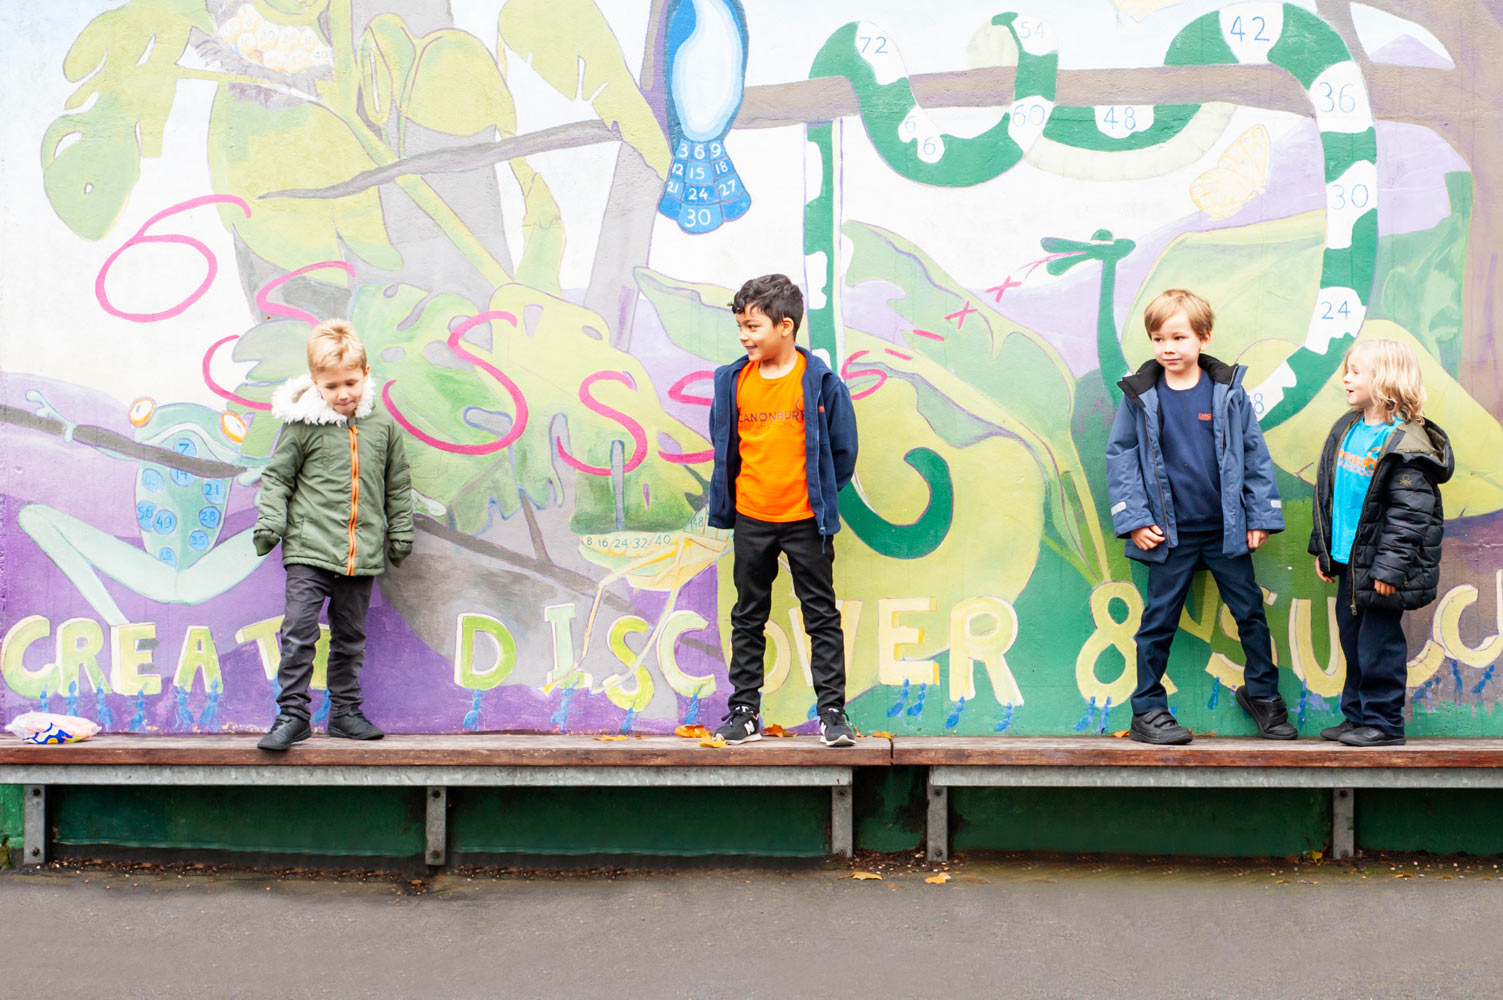 London school website photography of pupils standing in front of a painted wall